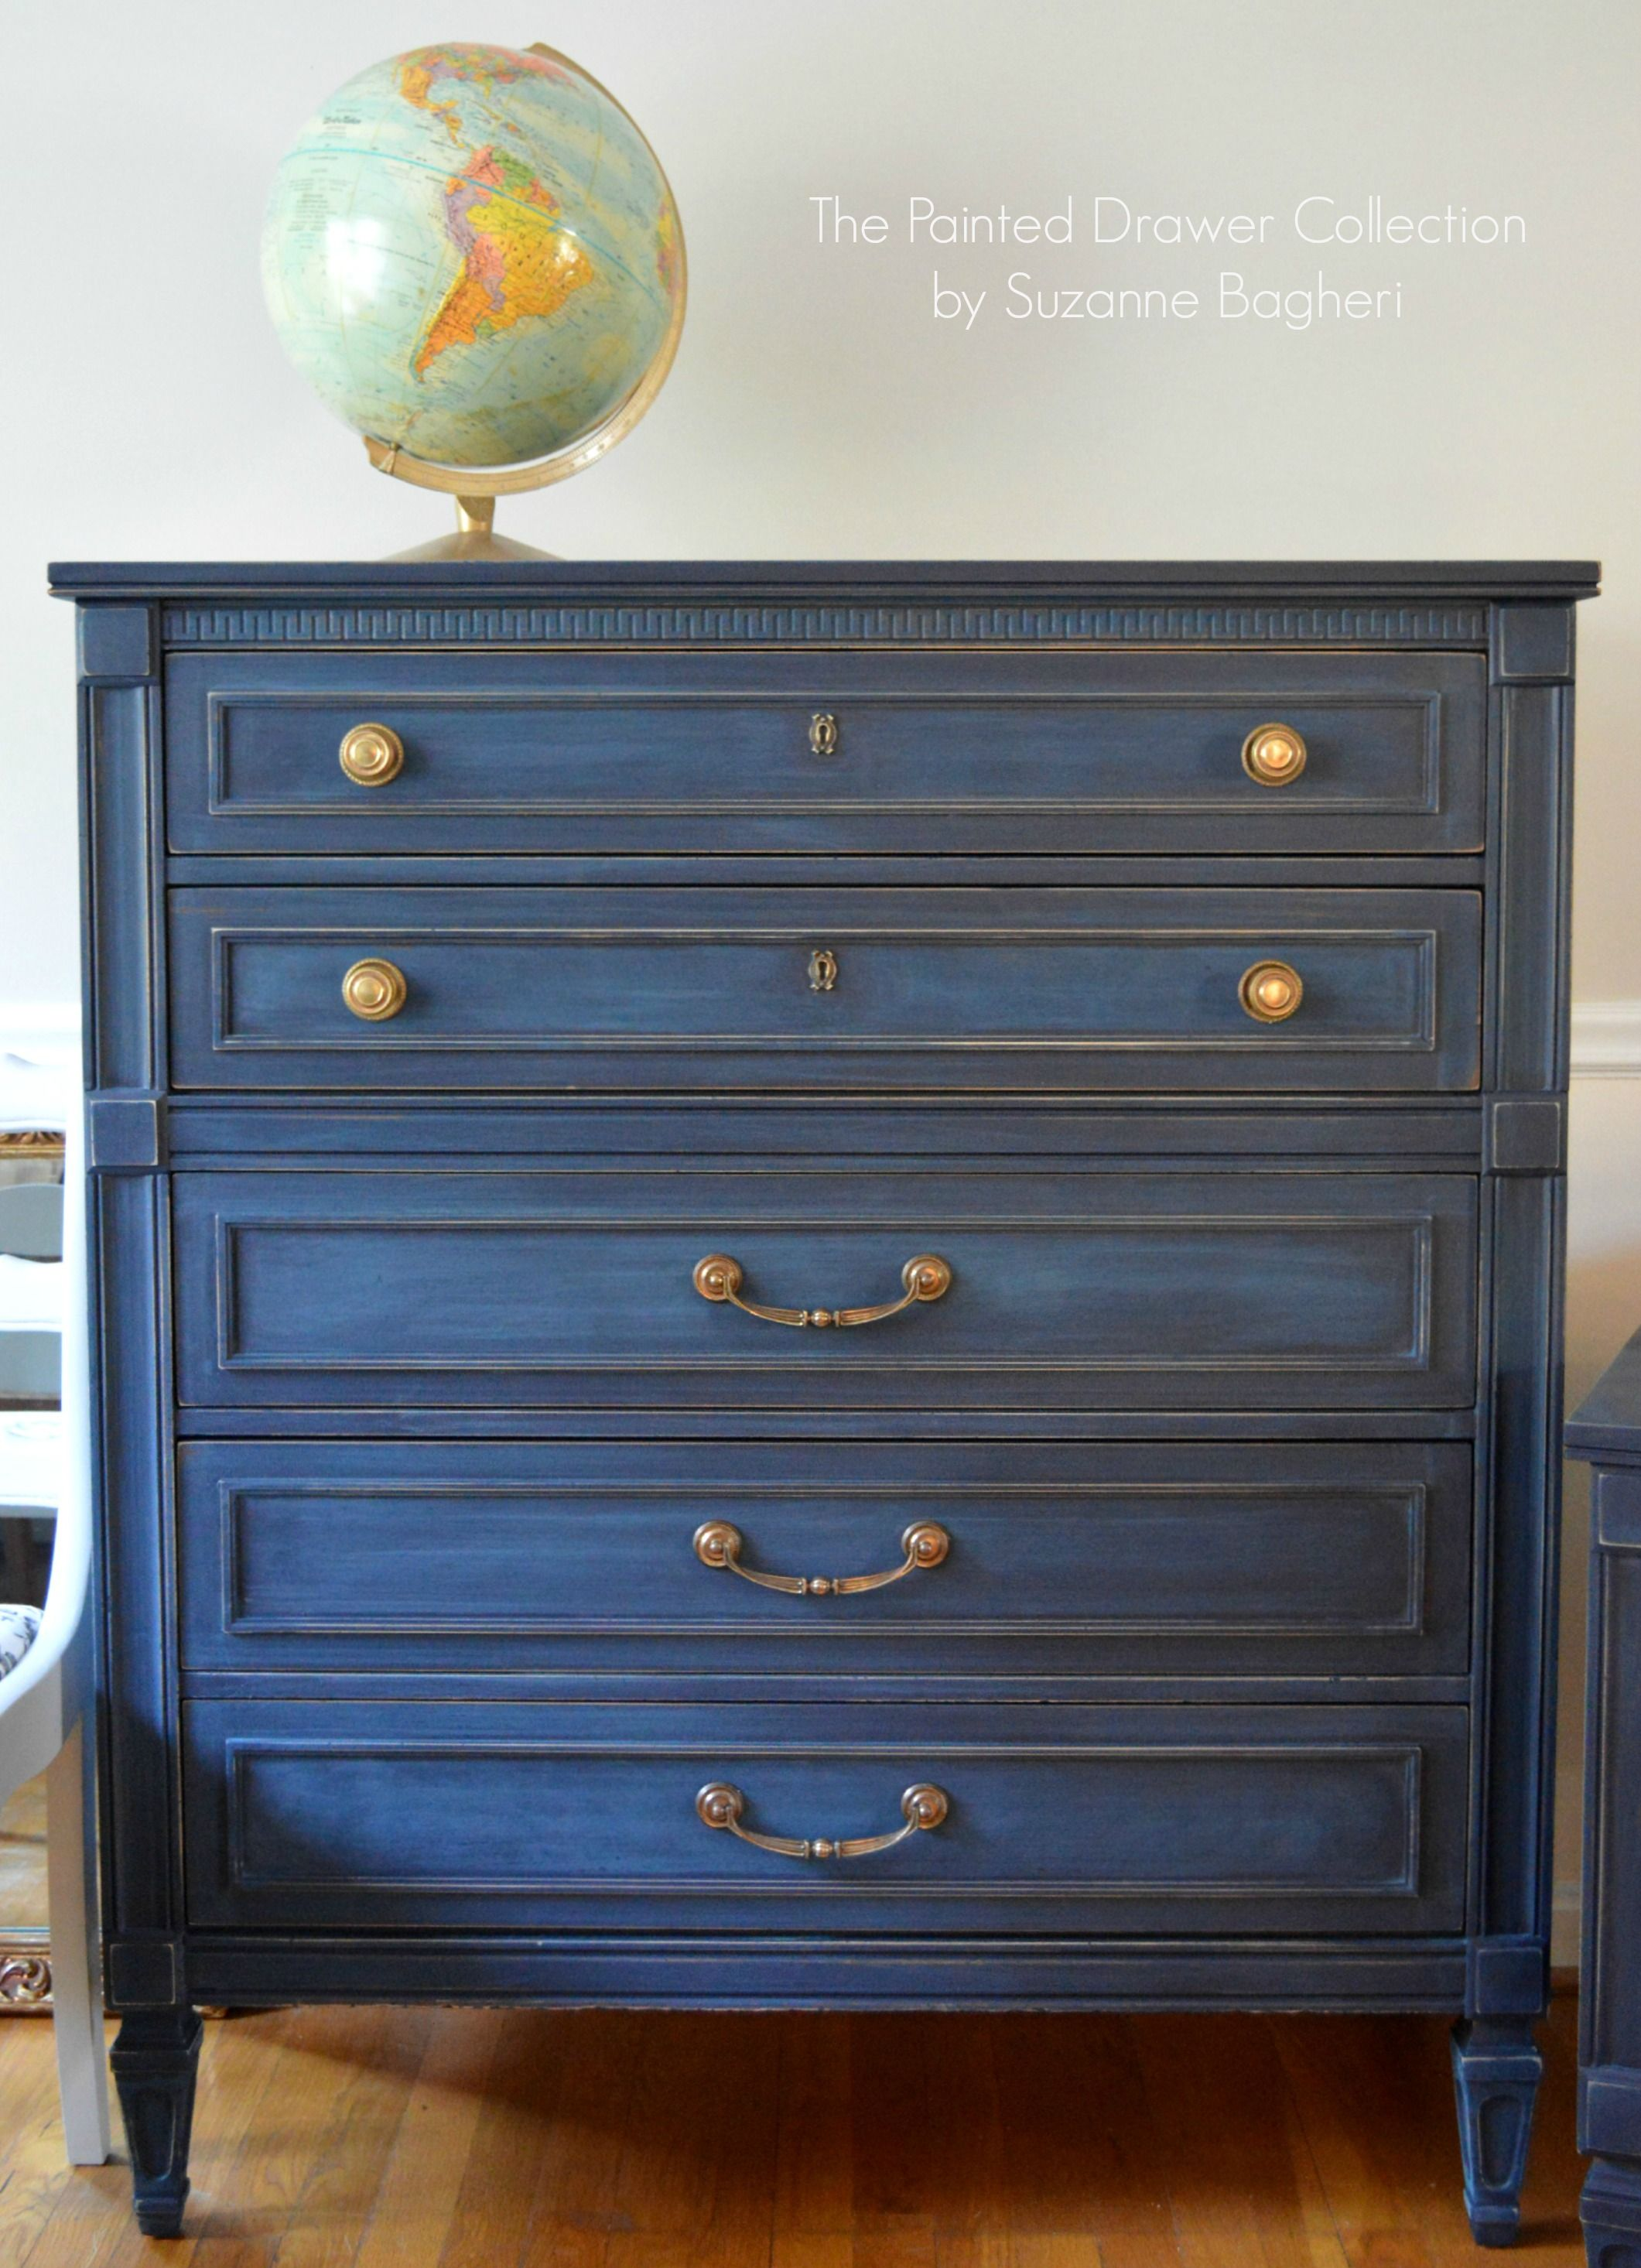 General finishes coastal blue a true navy blue on this set i sanded the coastal blue back to create an almost denim look